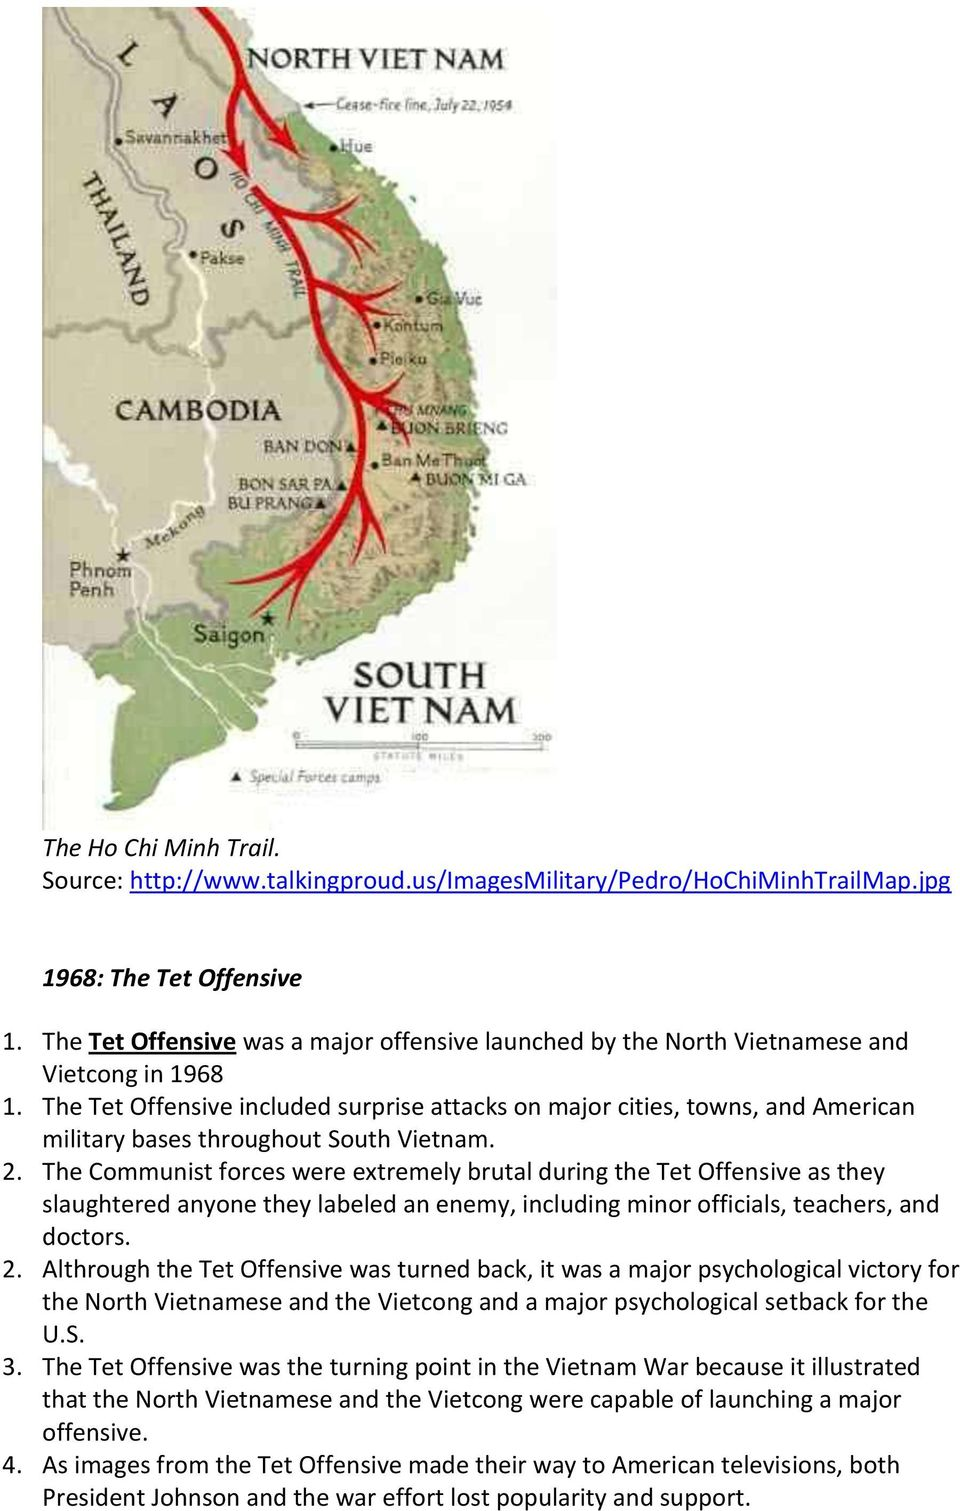 The Tet Offensive included surprise attacks on major cities, towns, and American military bases throughout South Vietnam. 2.